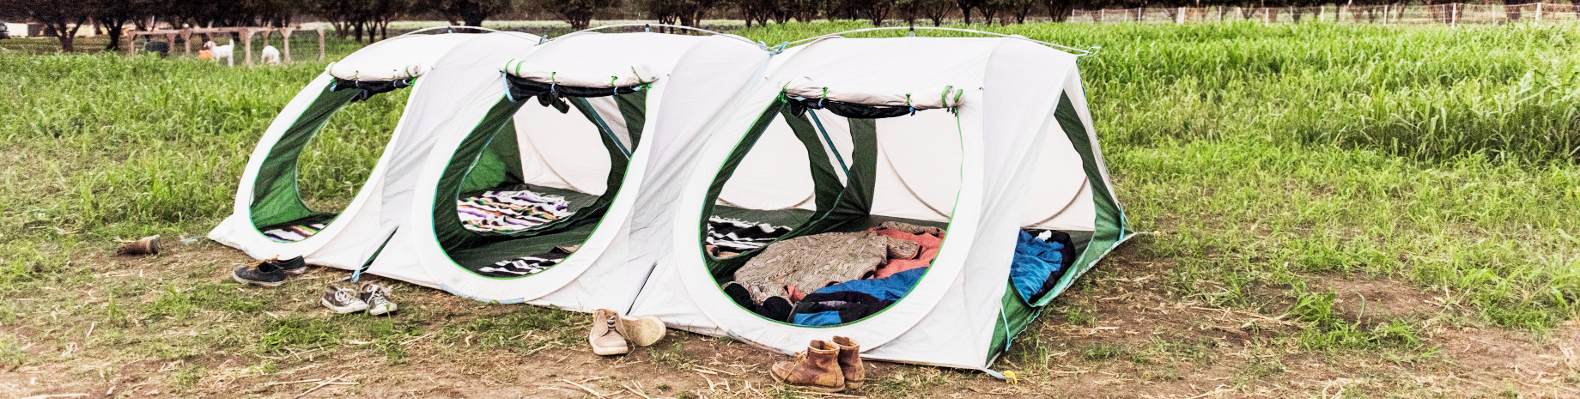 Aliteu0027s pop-up Sierra Shack tents connect to create multi-room shelters | Inhabitat - Green Design Innovation Architecture Green Building & Aliteu0027s pop-up Sierra Shack tents connect to create multi-room ...